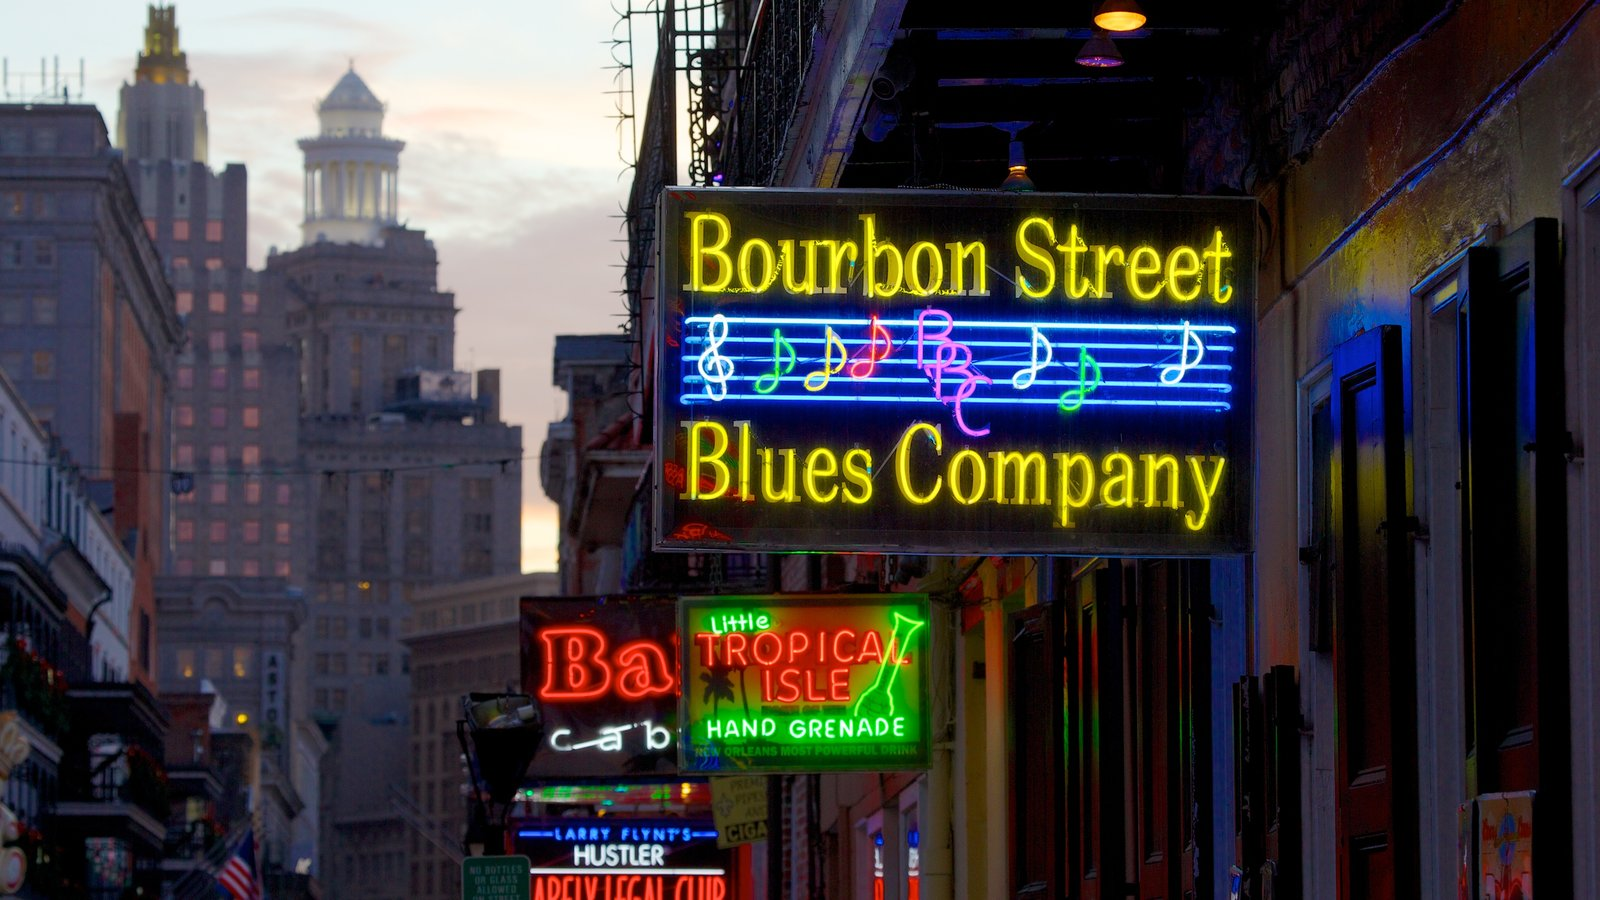 Bourbon Street which includes a city, a skyscraper and signage